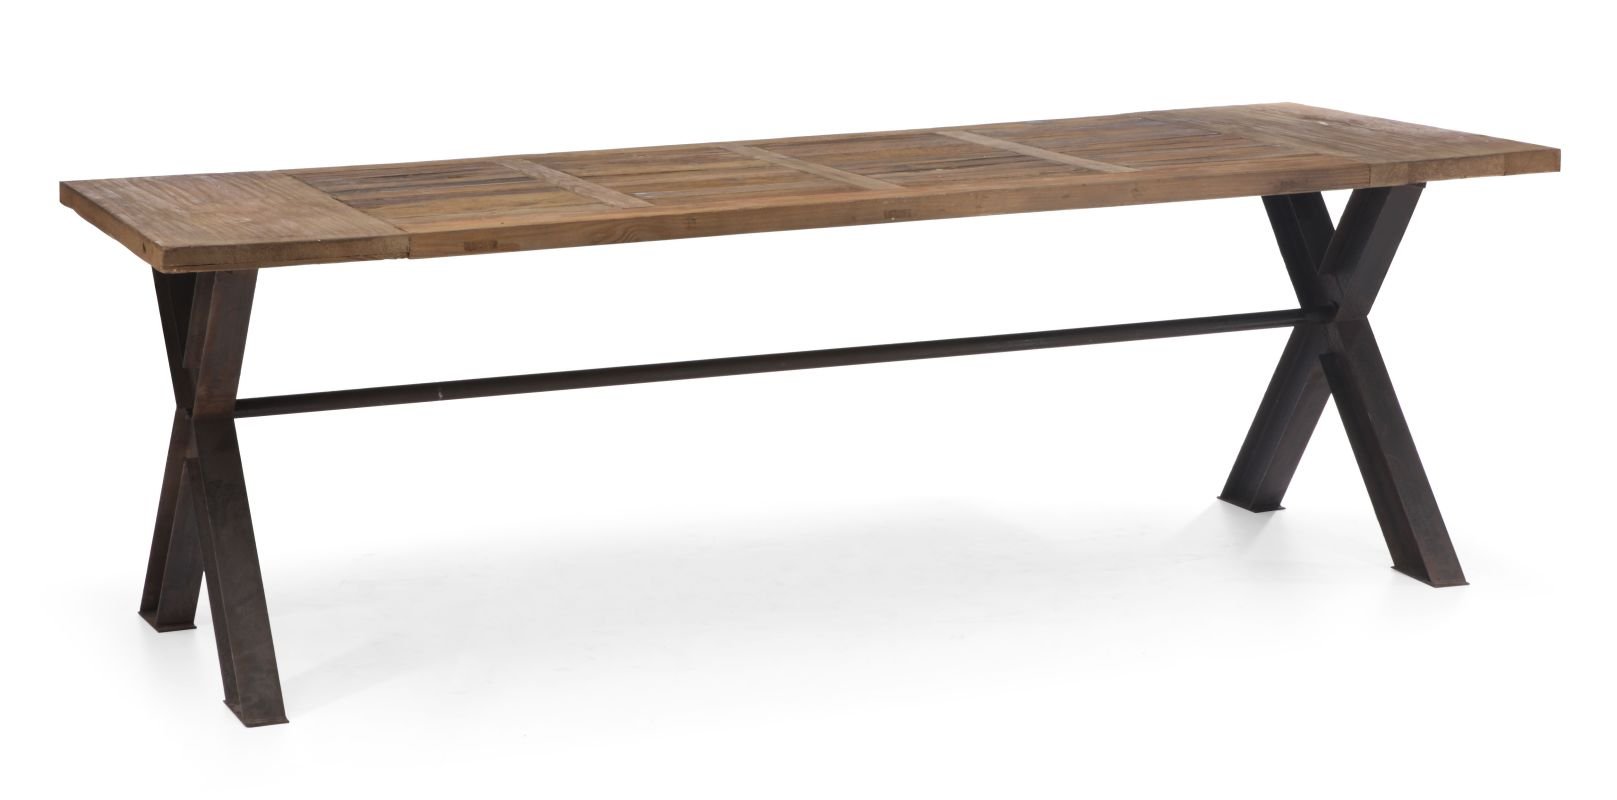 Zuo Modern Haight Ashbury Dining Table Haight Ashbury Fir Dining Table